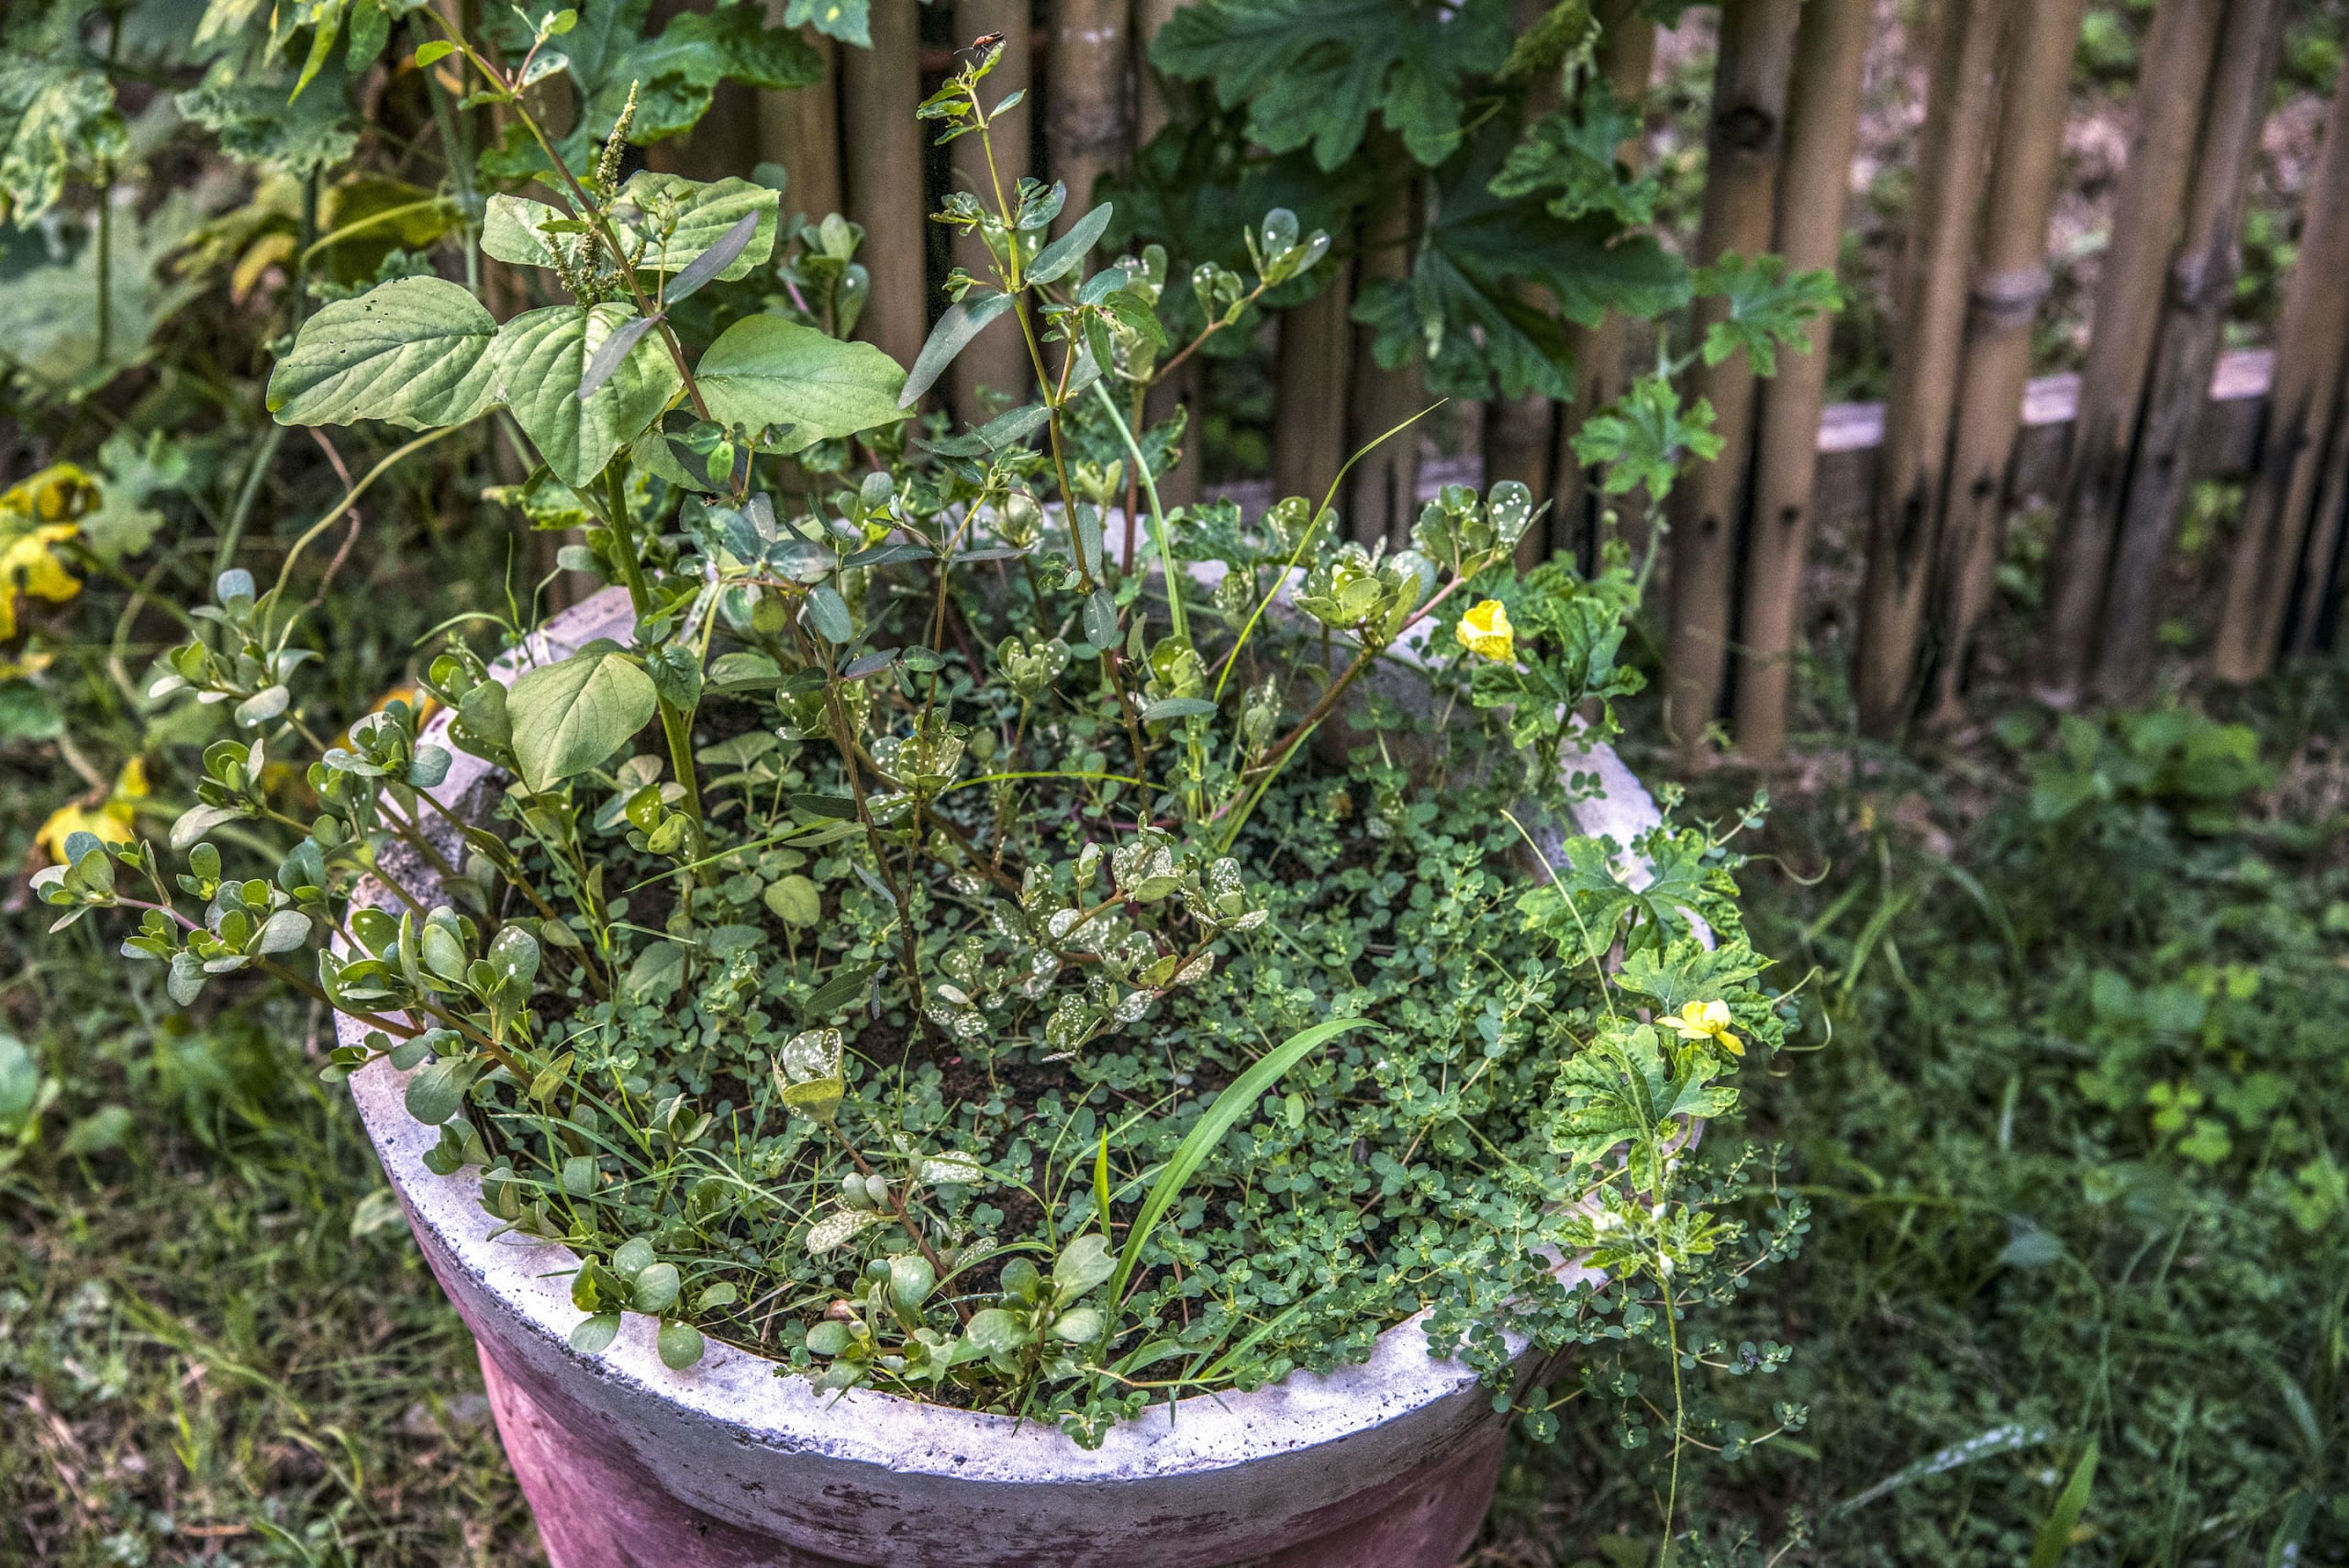 In heavily built-up environments like cities, any exposed patch of soil, however little, can grow wild if left alone. In this picture numerous species are growing from a seemingly abandoned flowering pot. Photo: Sanjay Basak